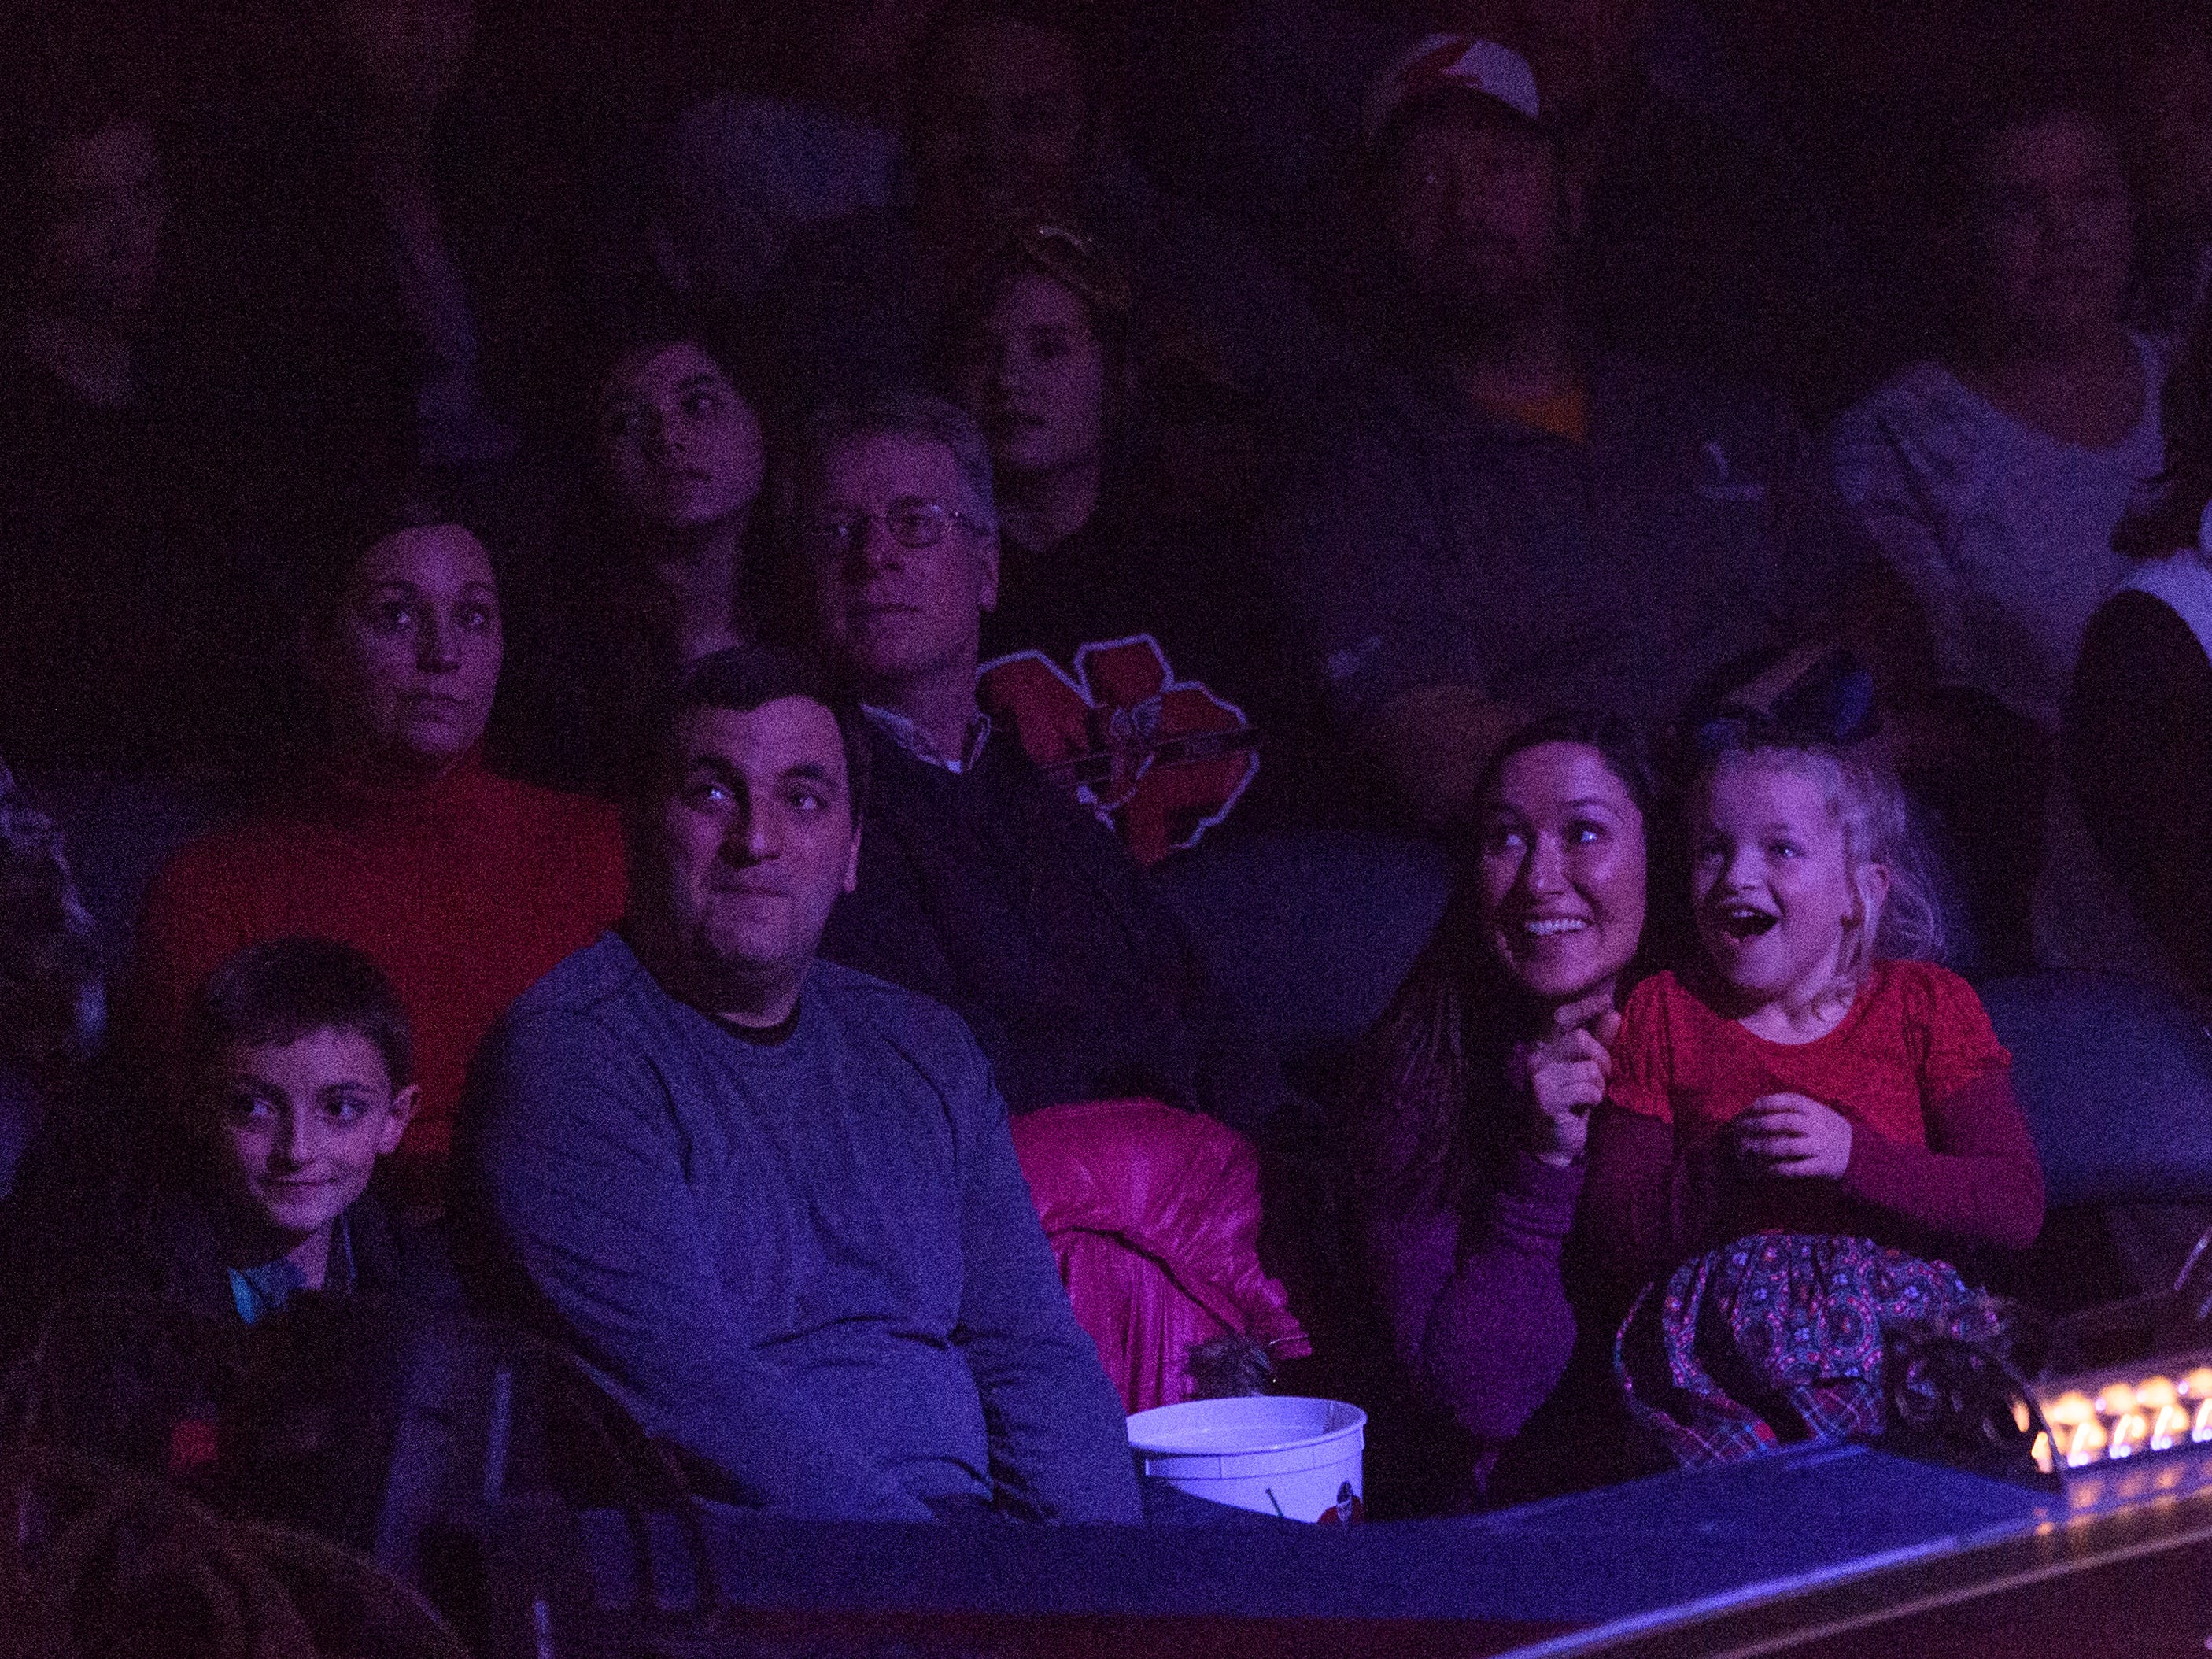 The crowd reacts to the performers during Cirque du Soleil's Corteo at Ford Center in Evansville, Ind., Wednesday night, Jan. 23, 2019. The show will be running until Sunday, Jan 27.